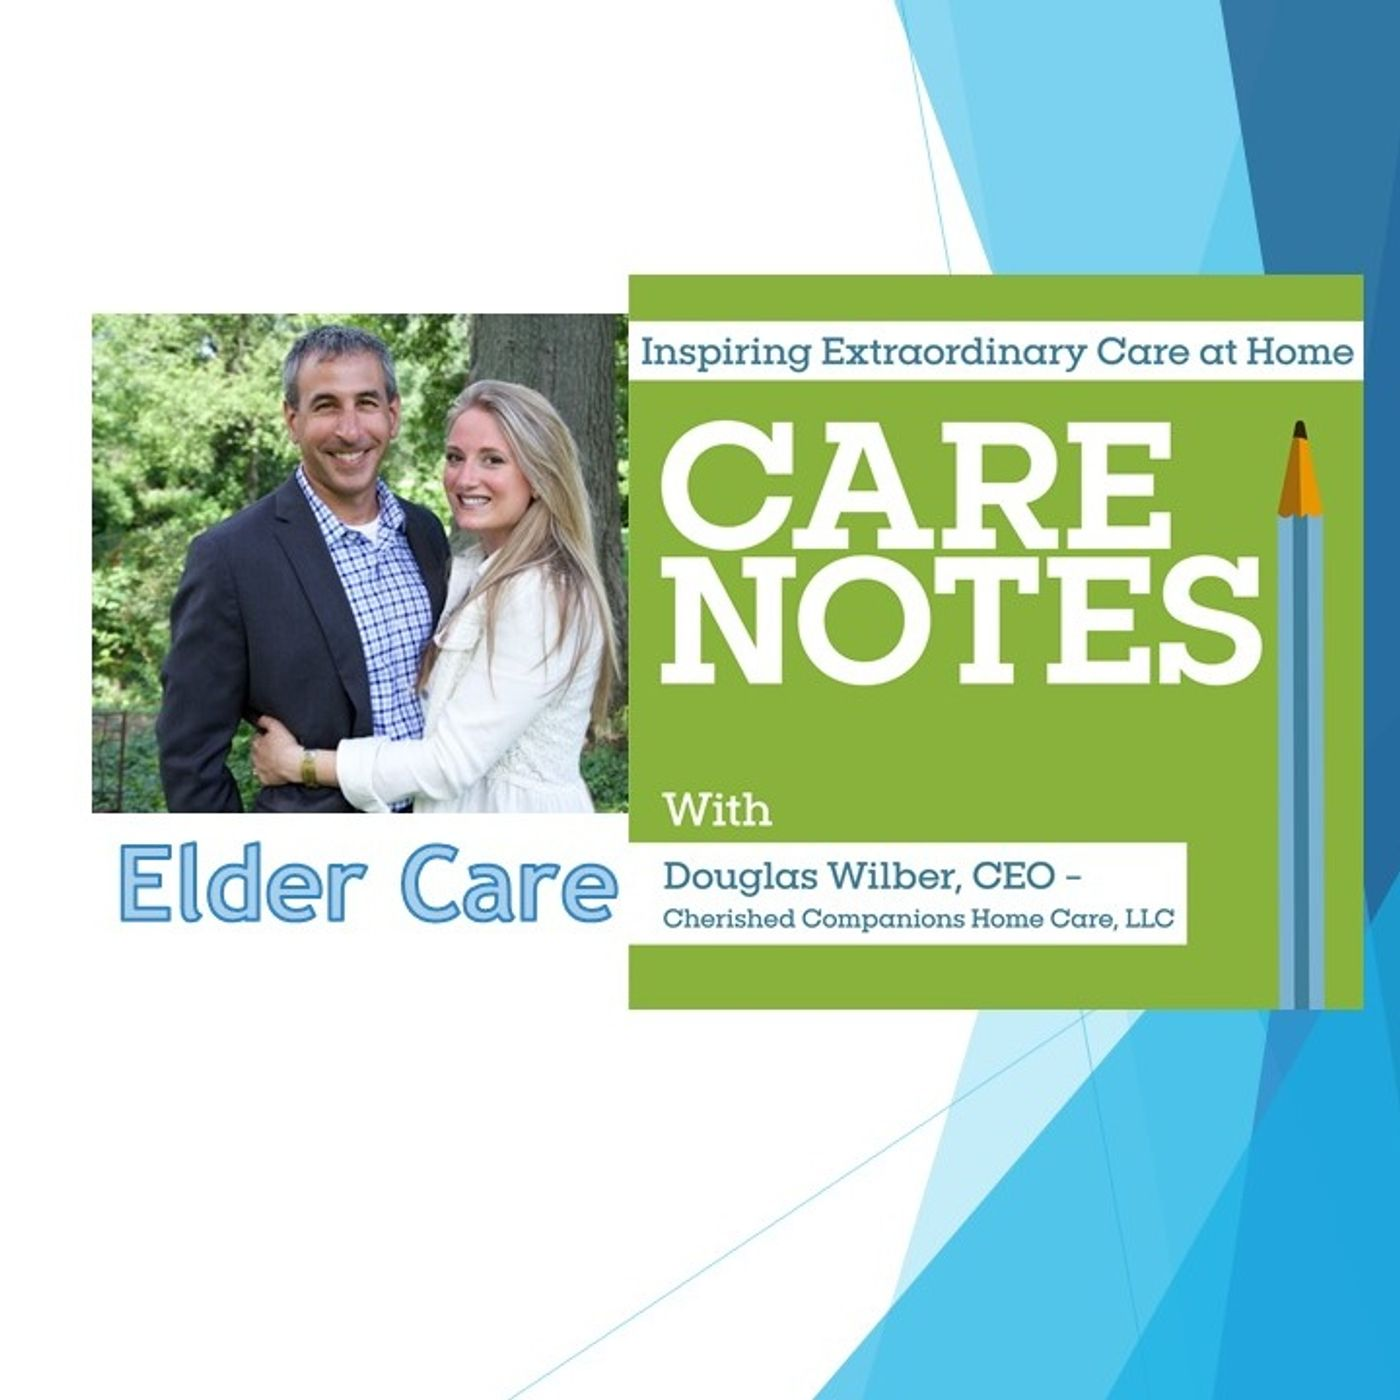 5care-notes-_-cherished-companions-8_21_18